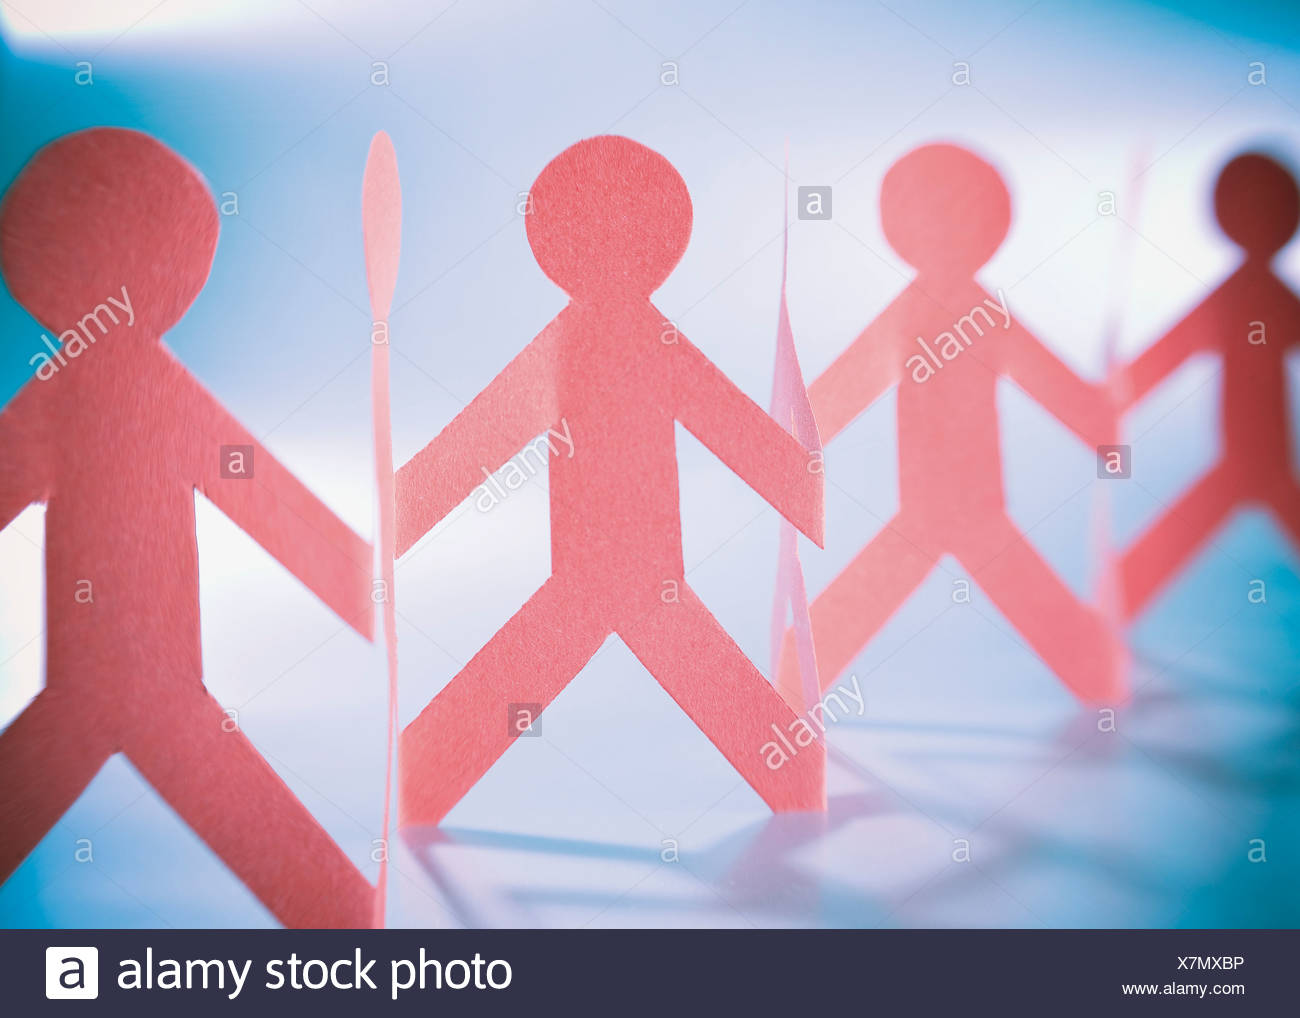 Red paper garland of people, close-up - Stock Image